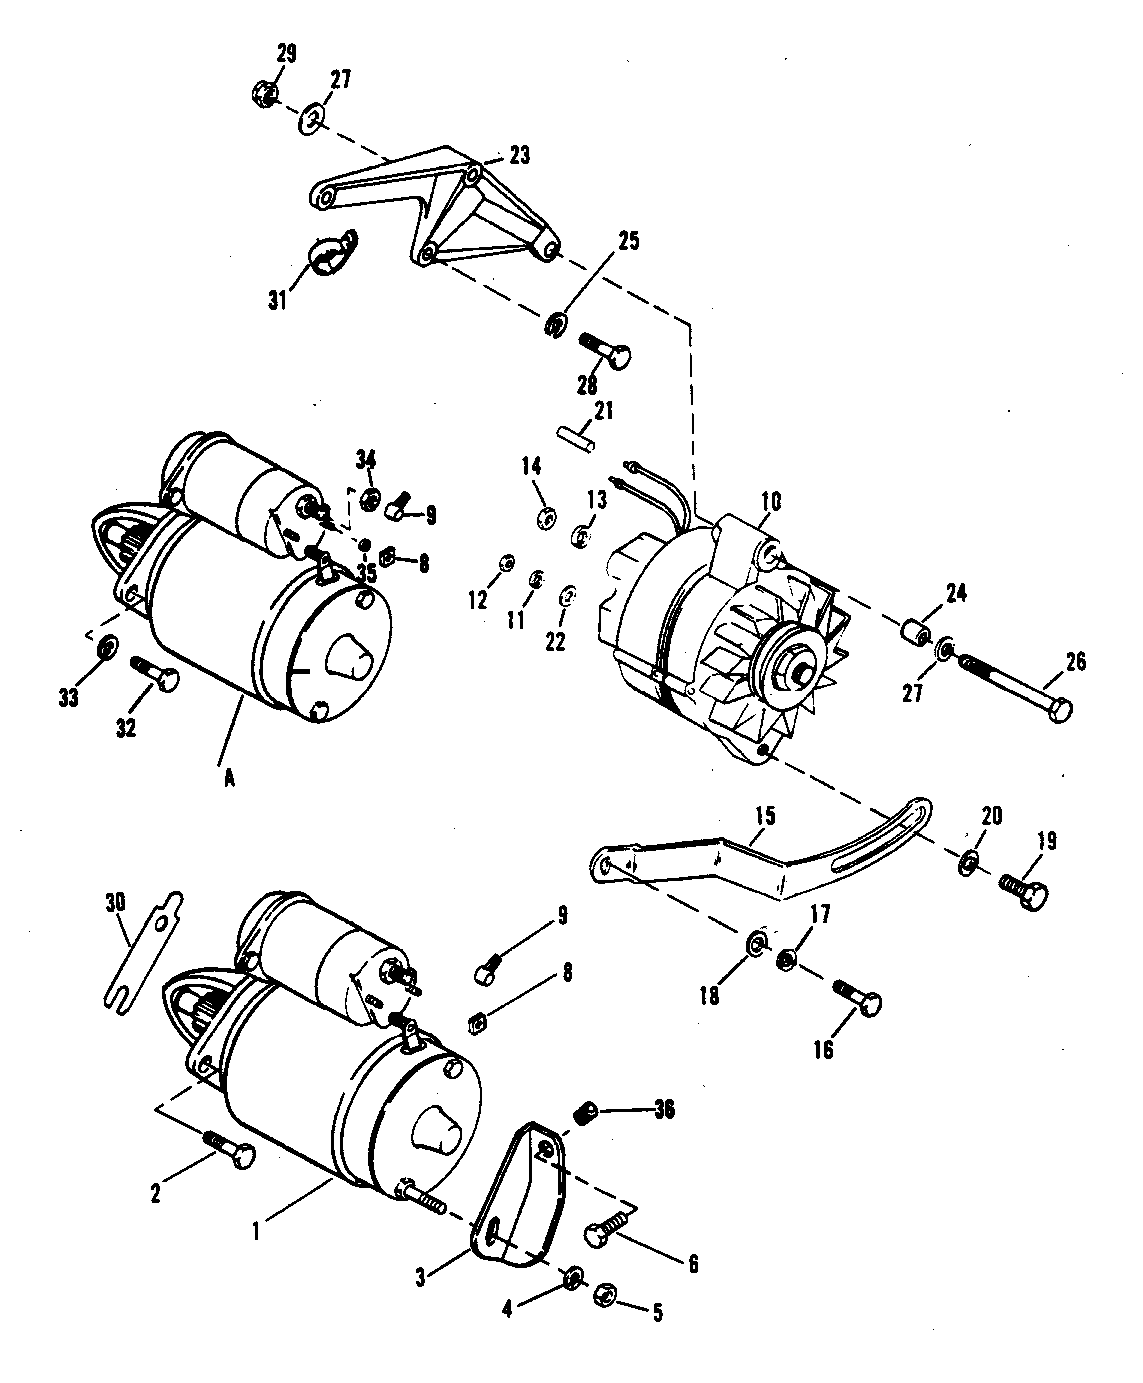 502 Gm Starter Diagram Electrical Wiring Diagrams Cp Performance And Alternator 465 1990 1992 Serial 0c849992